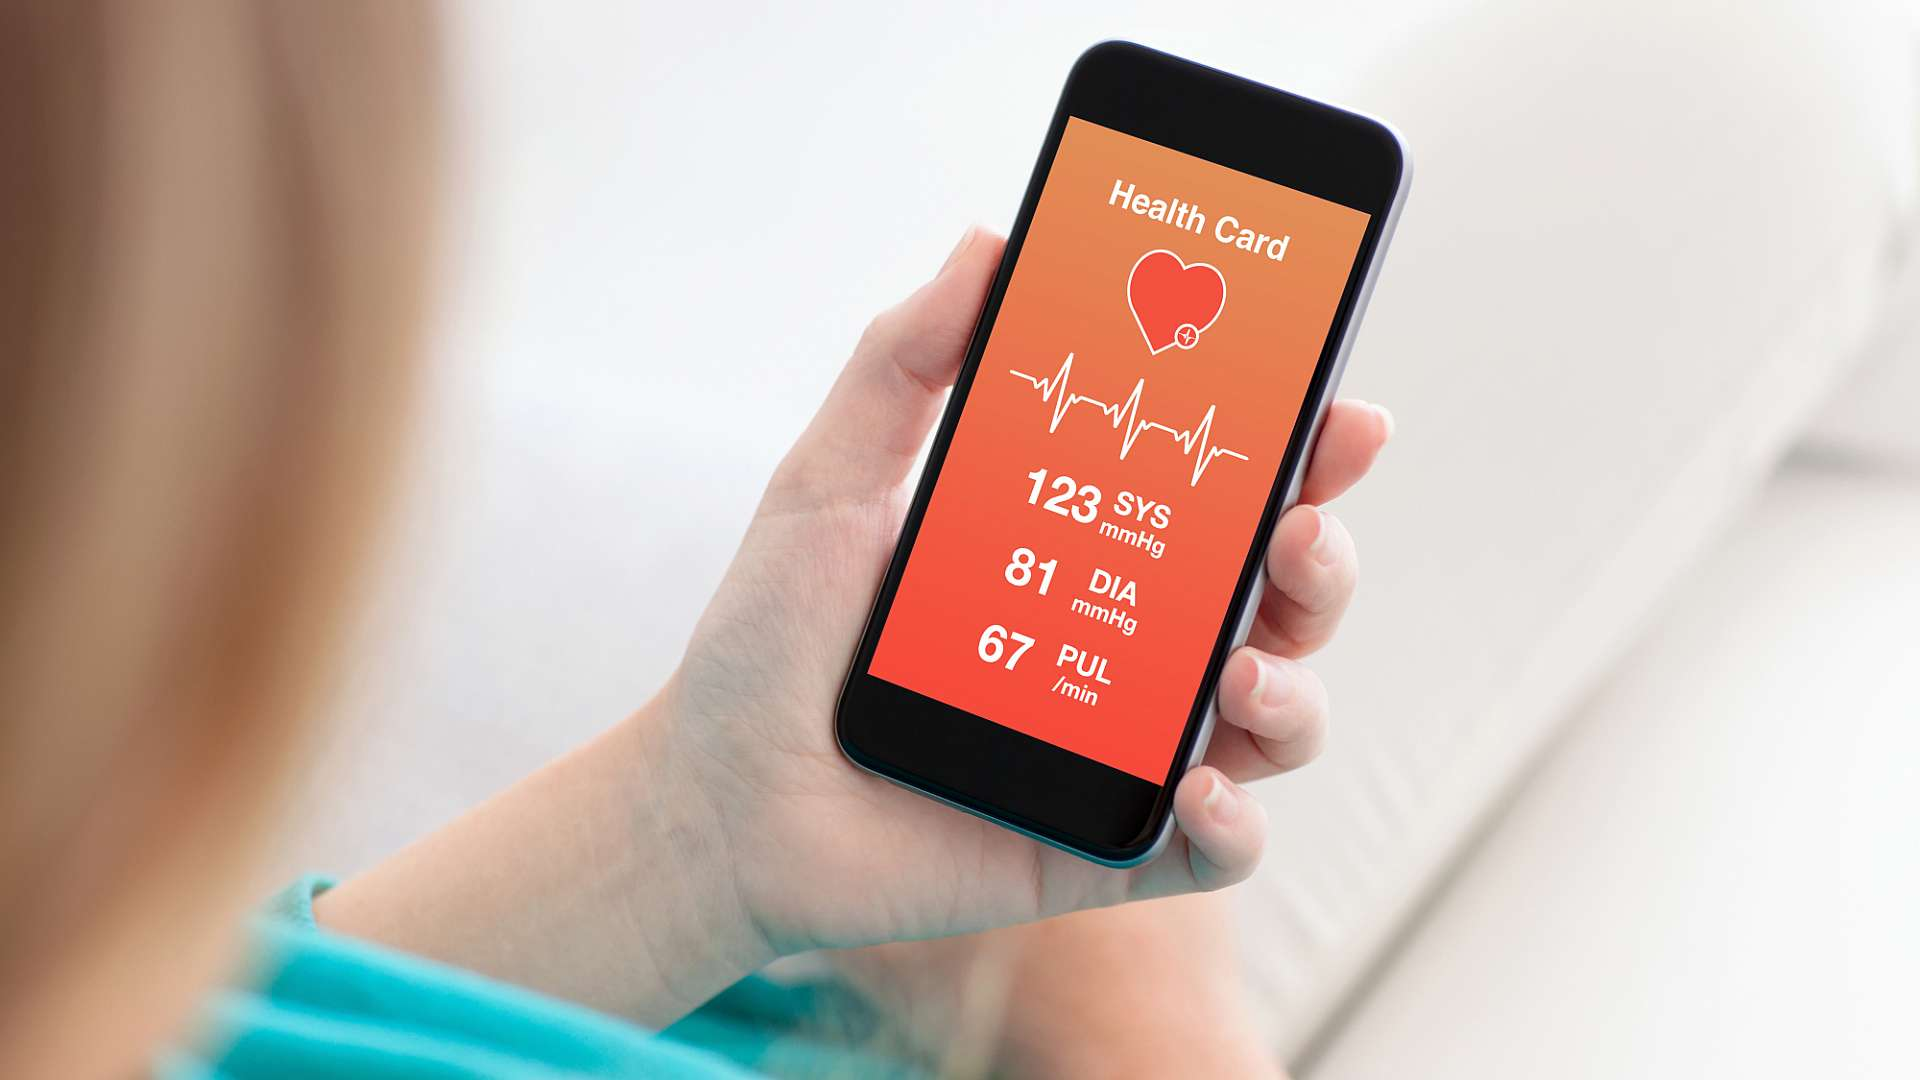 Fitness apps have taken the world by storm